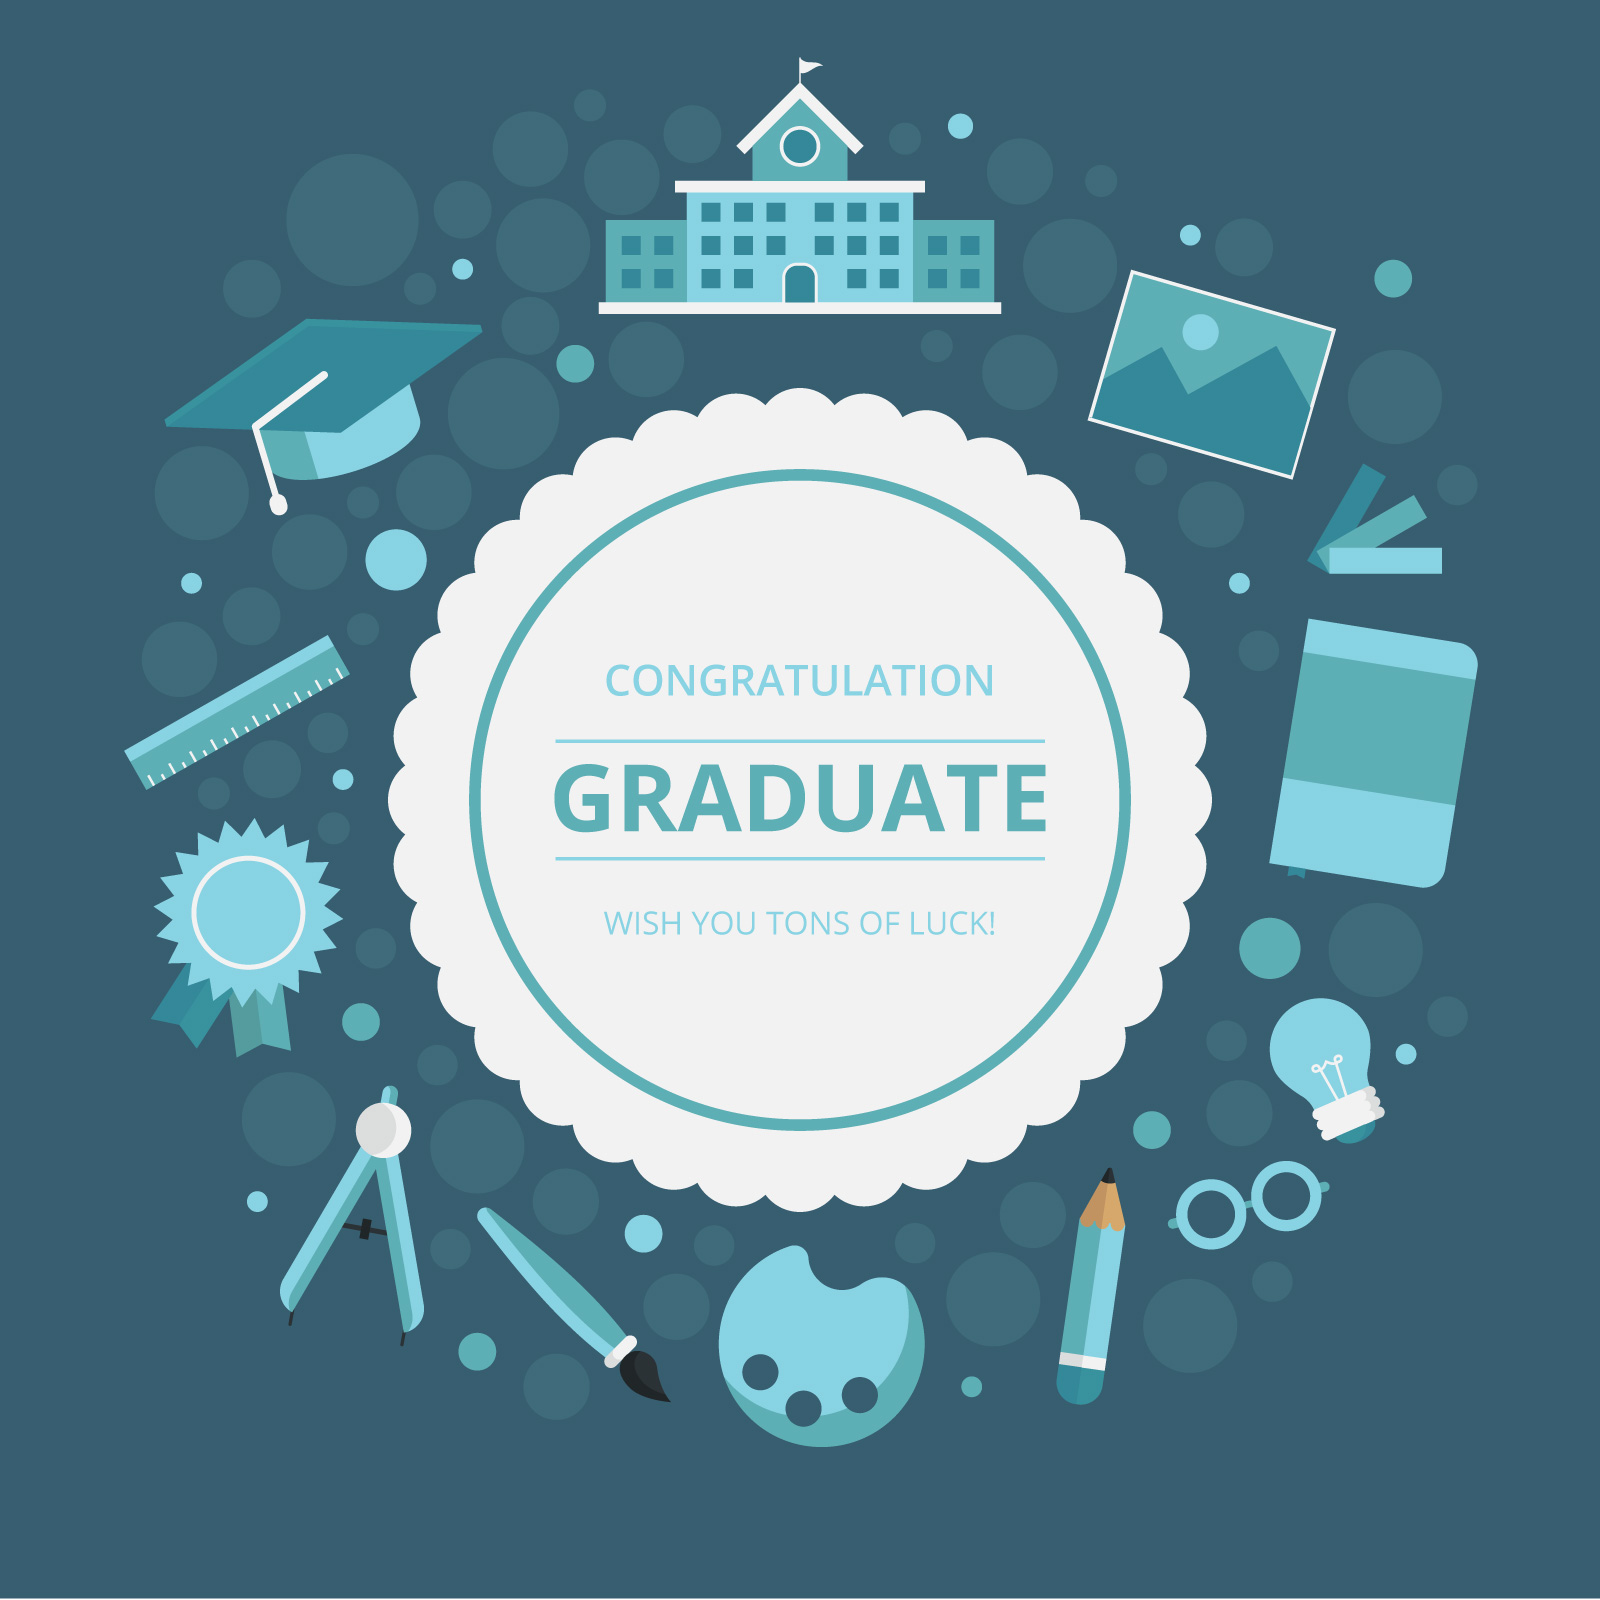 Graduation Card Greetings With School Or University Stationery And